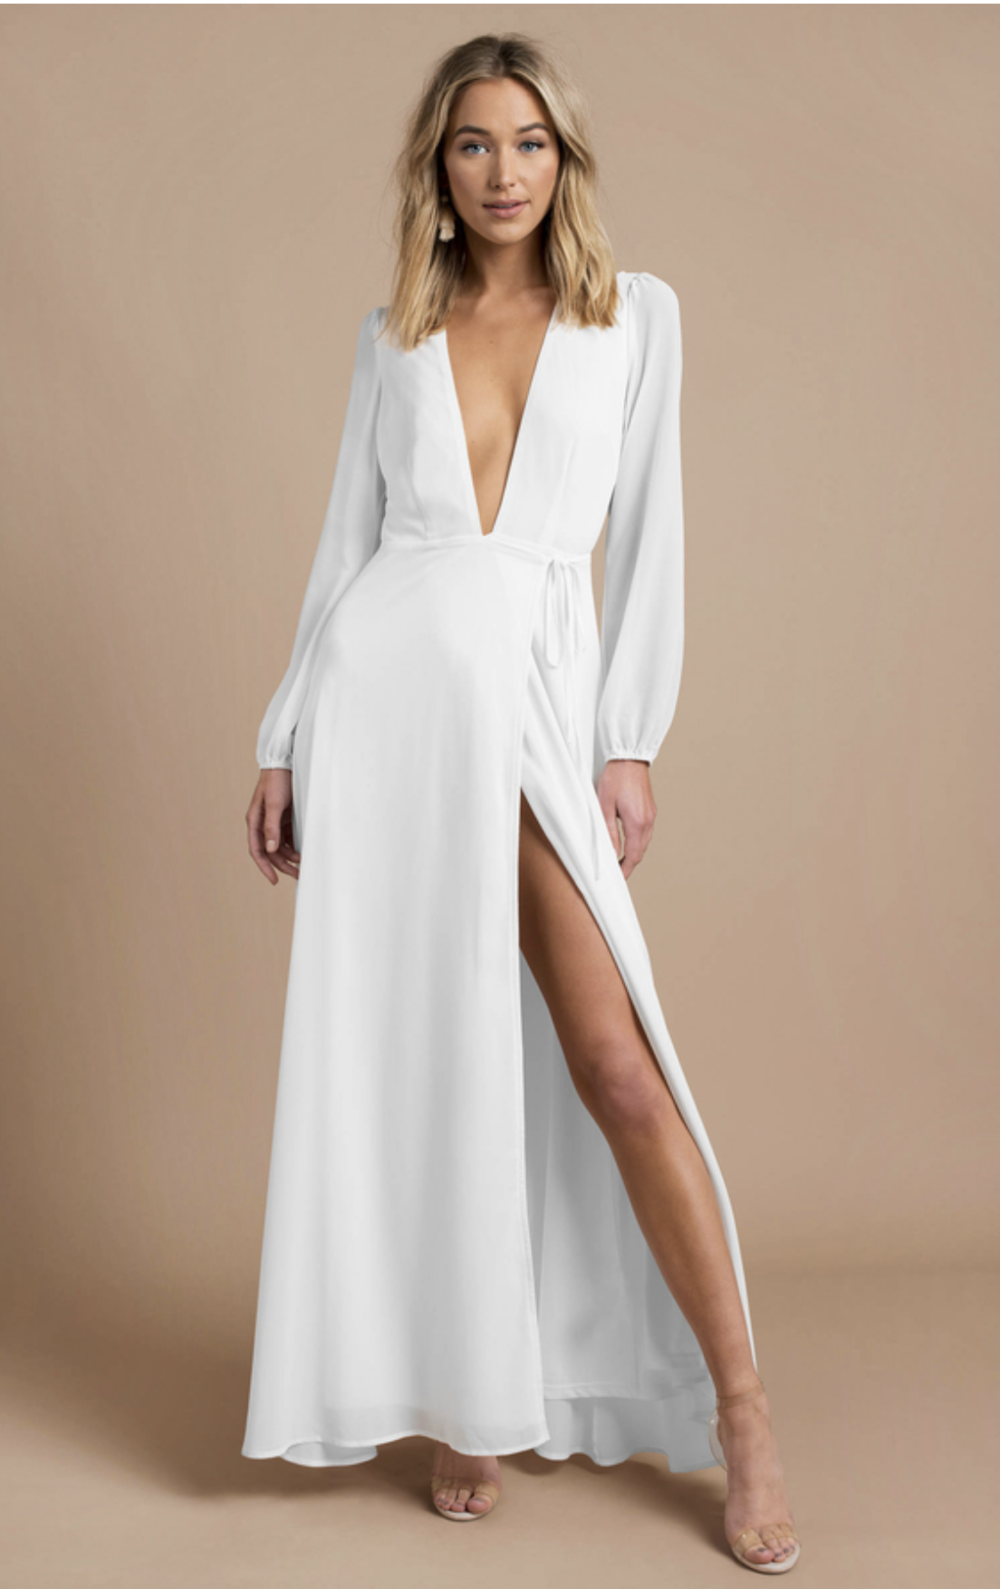 Cherish Me Ivory Plunging Maxi Dress - $46